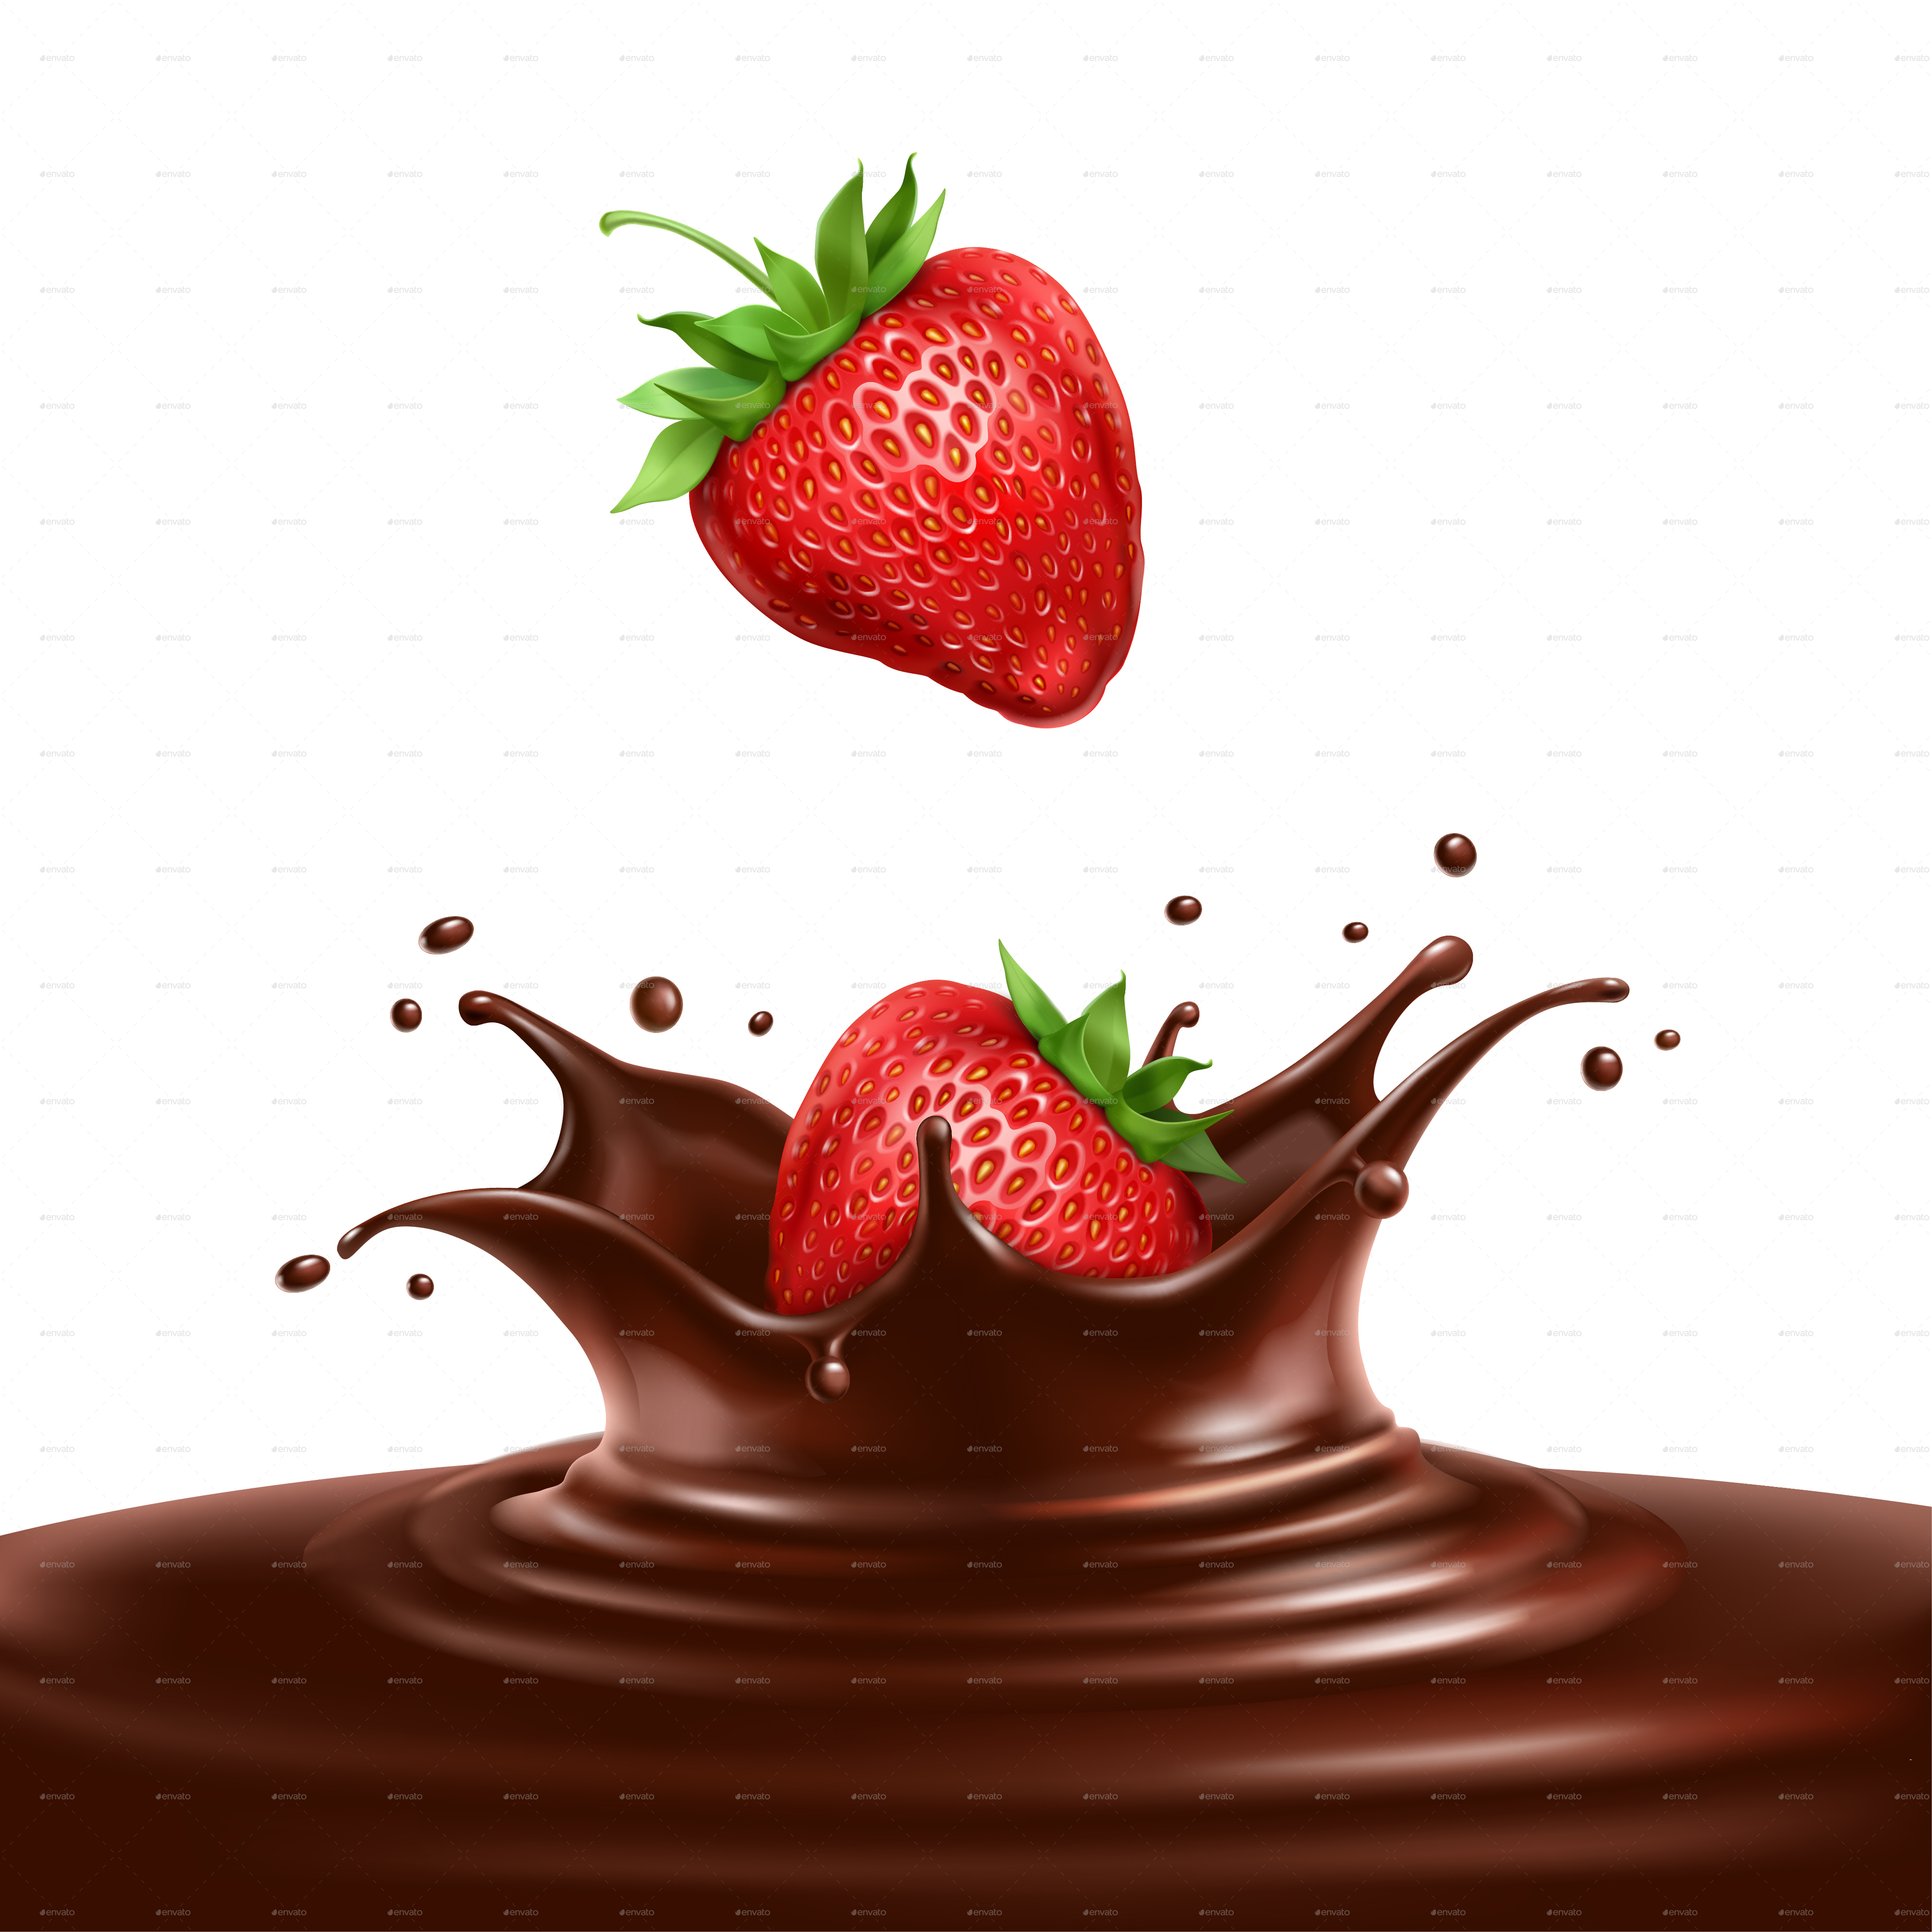 Strawberries Dipped in Chocolate by Mia_V | GraphicRiver